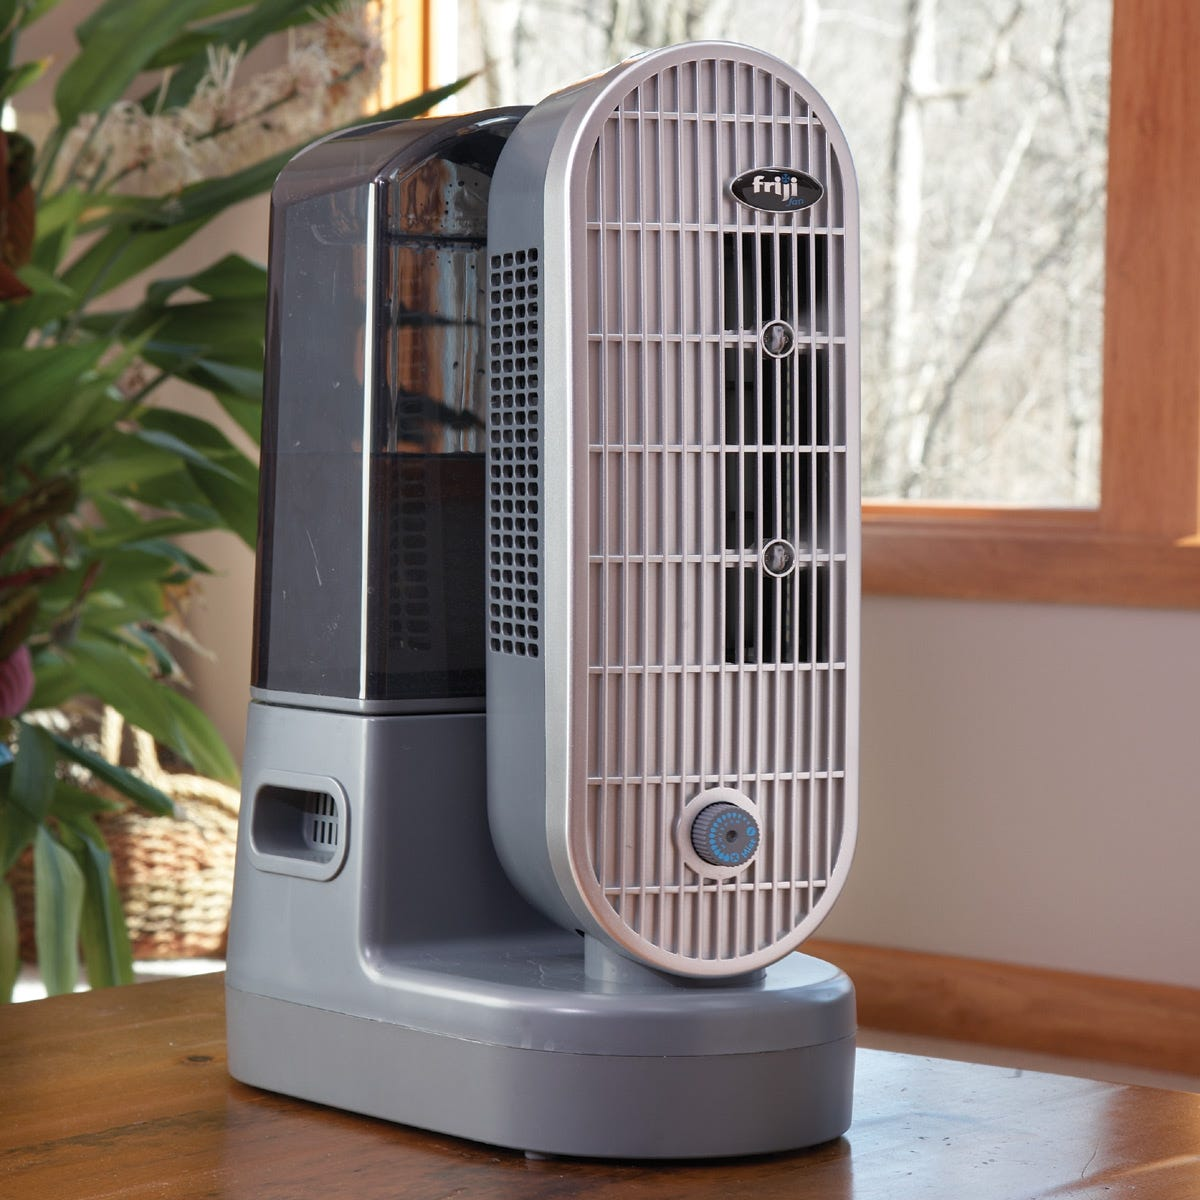 Indoor Misting Fan : Friji indoor misting fan